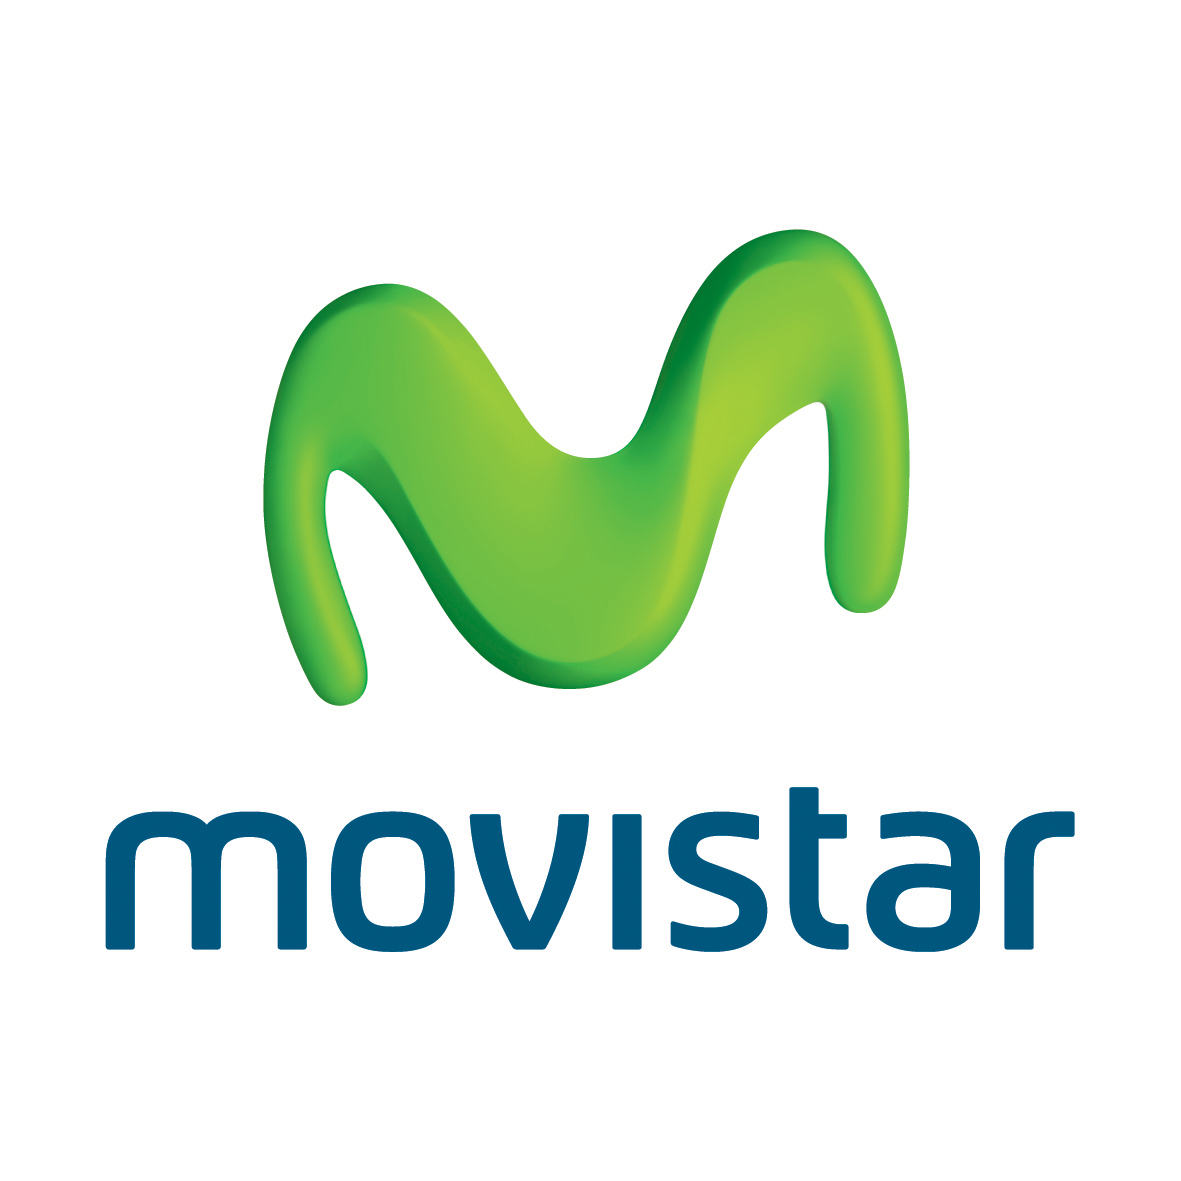 Movistar Tv To Launch Premium Series Channel Pay Tv News Rapid Tv News